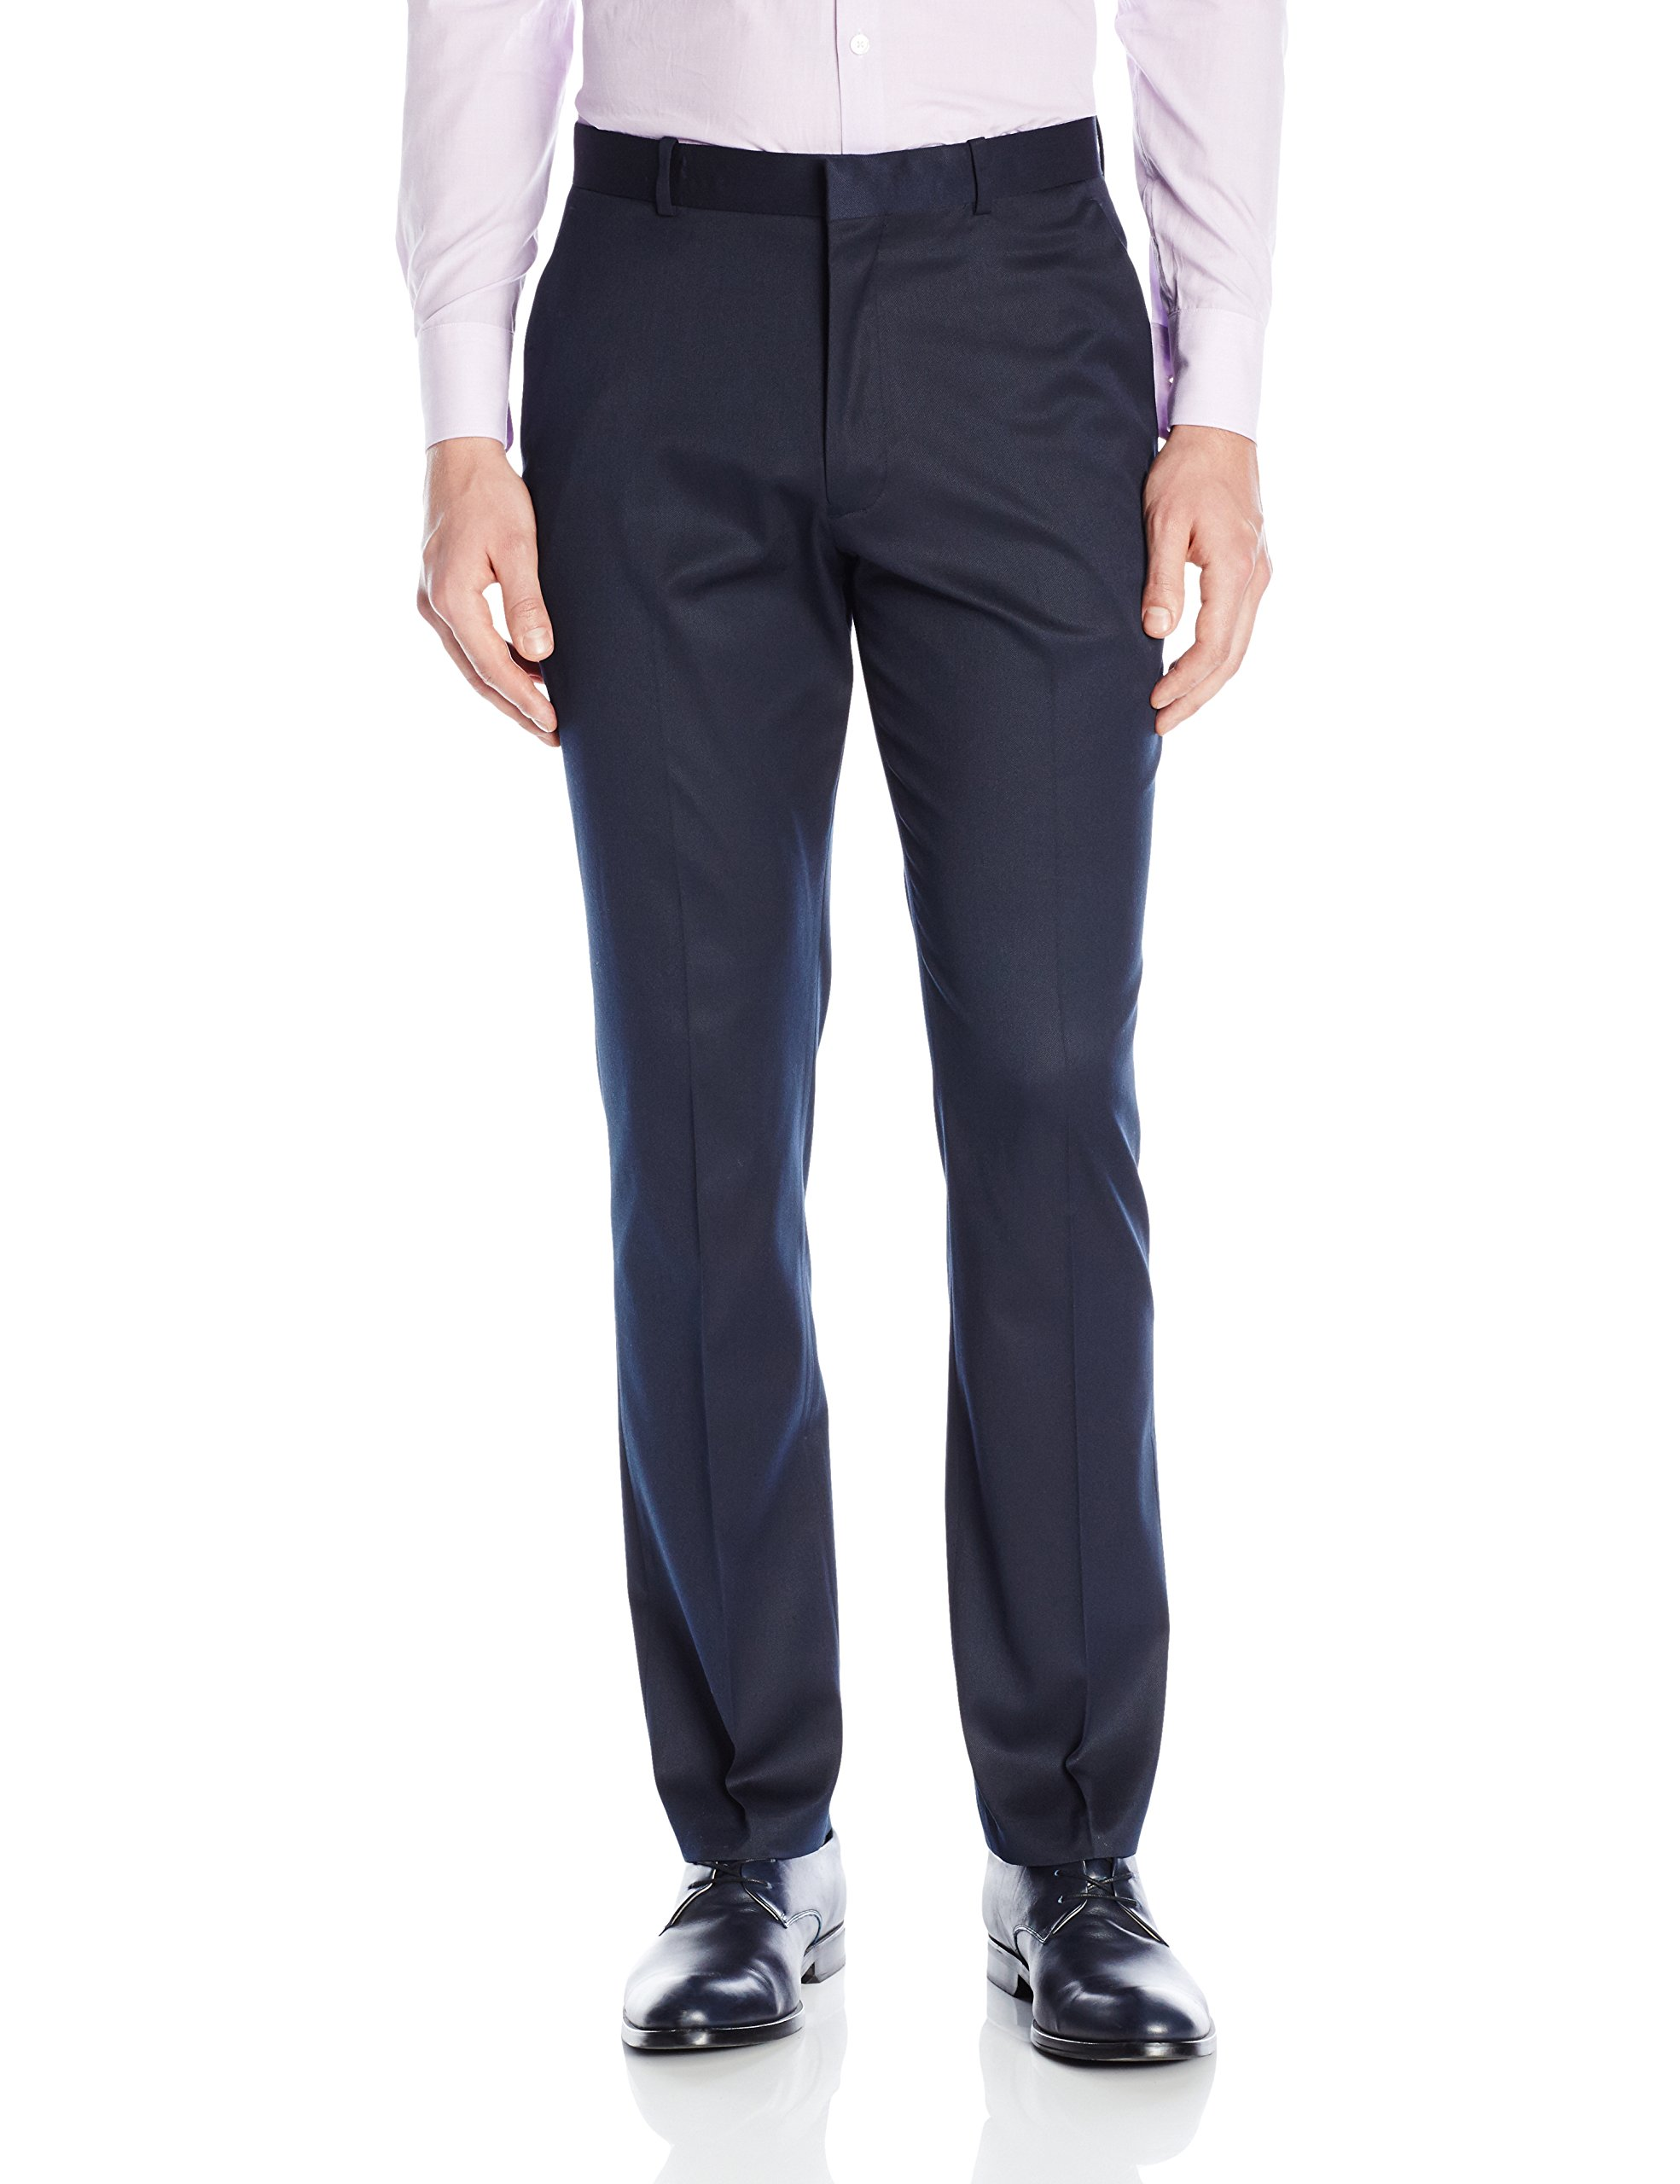 Perry Ellis Men's Solid Slim Fit Pant, Navy, 34x32 by Perry Ellis (Image #1)